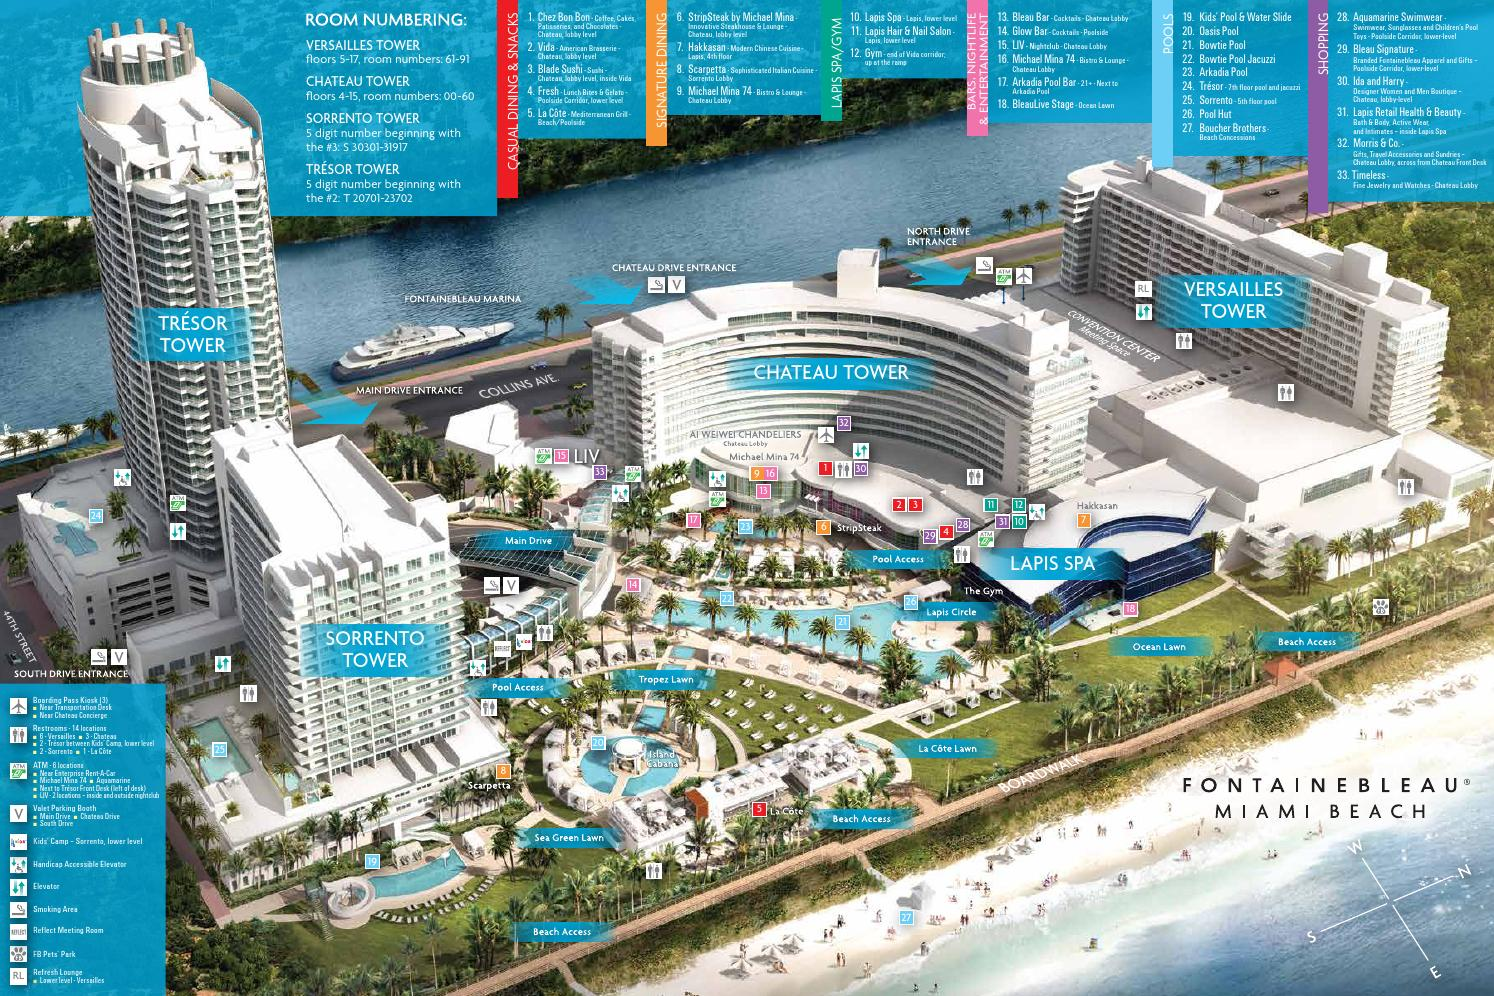 Property Map by Fontainebleau Miami Beach - issuu